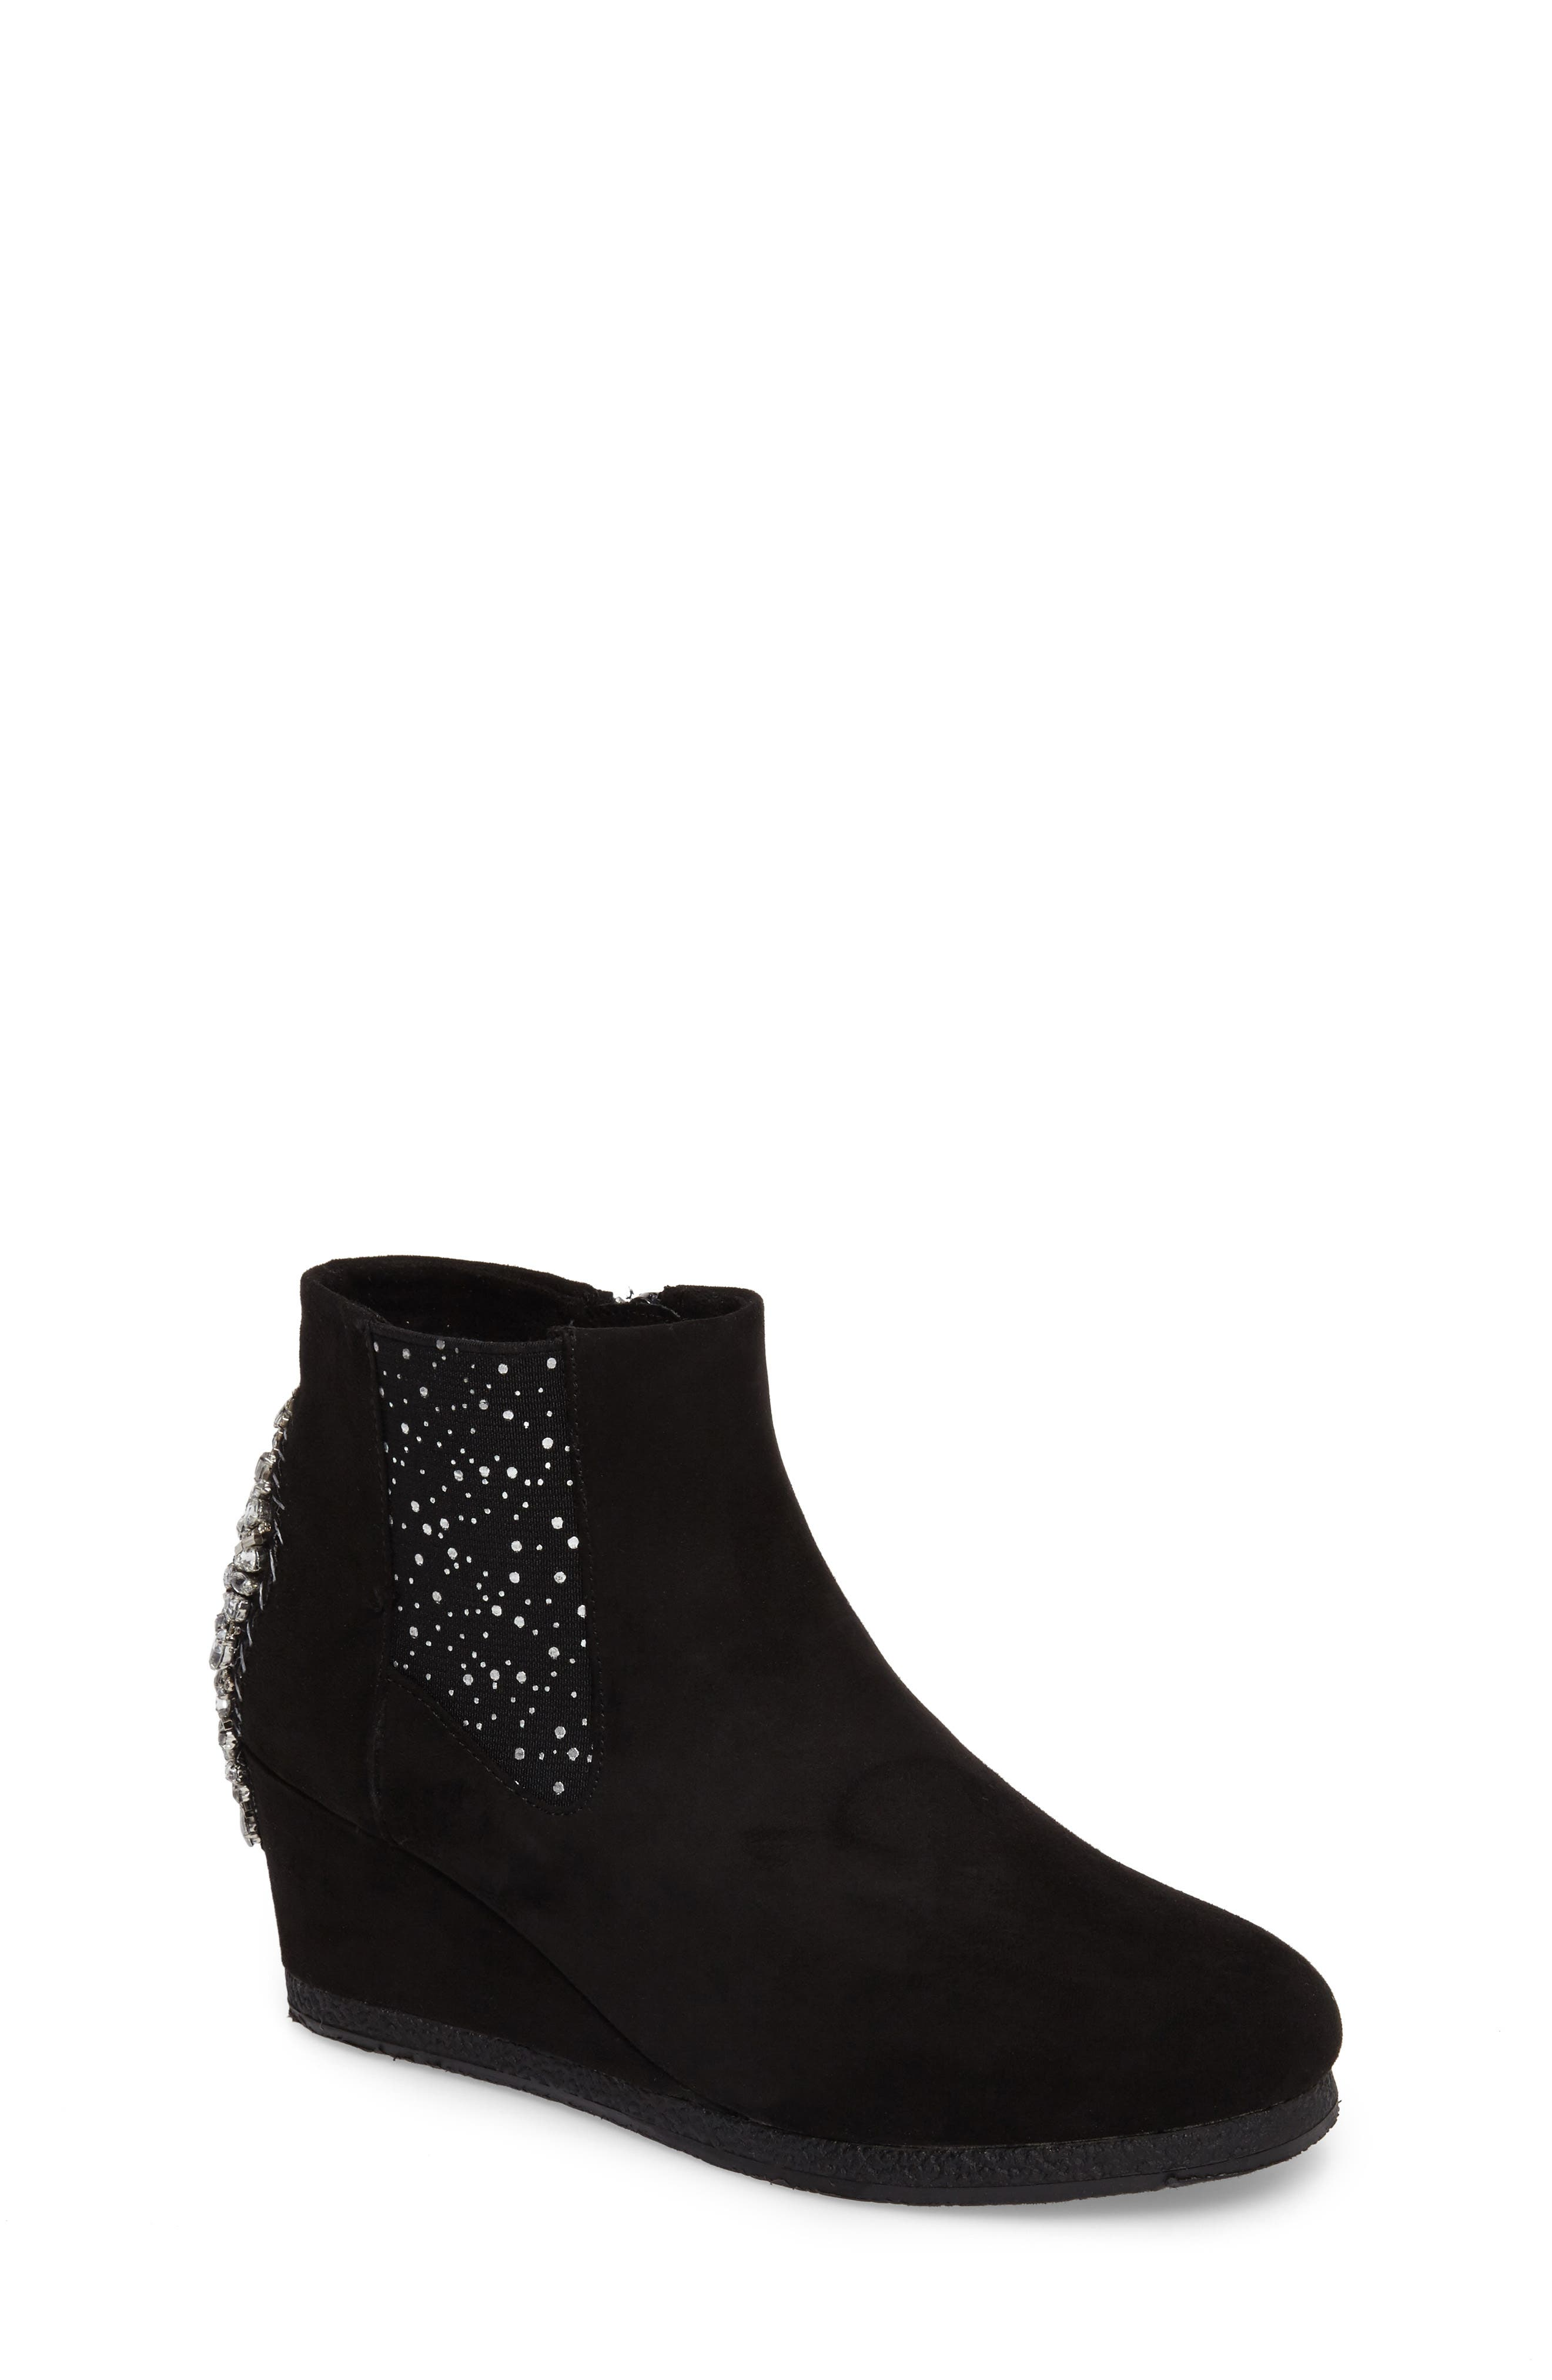 Andrea Kiara Embellished Wedge Bootie,                         Main,                         color, 001